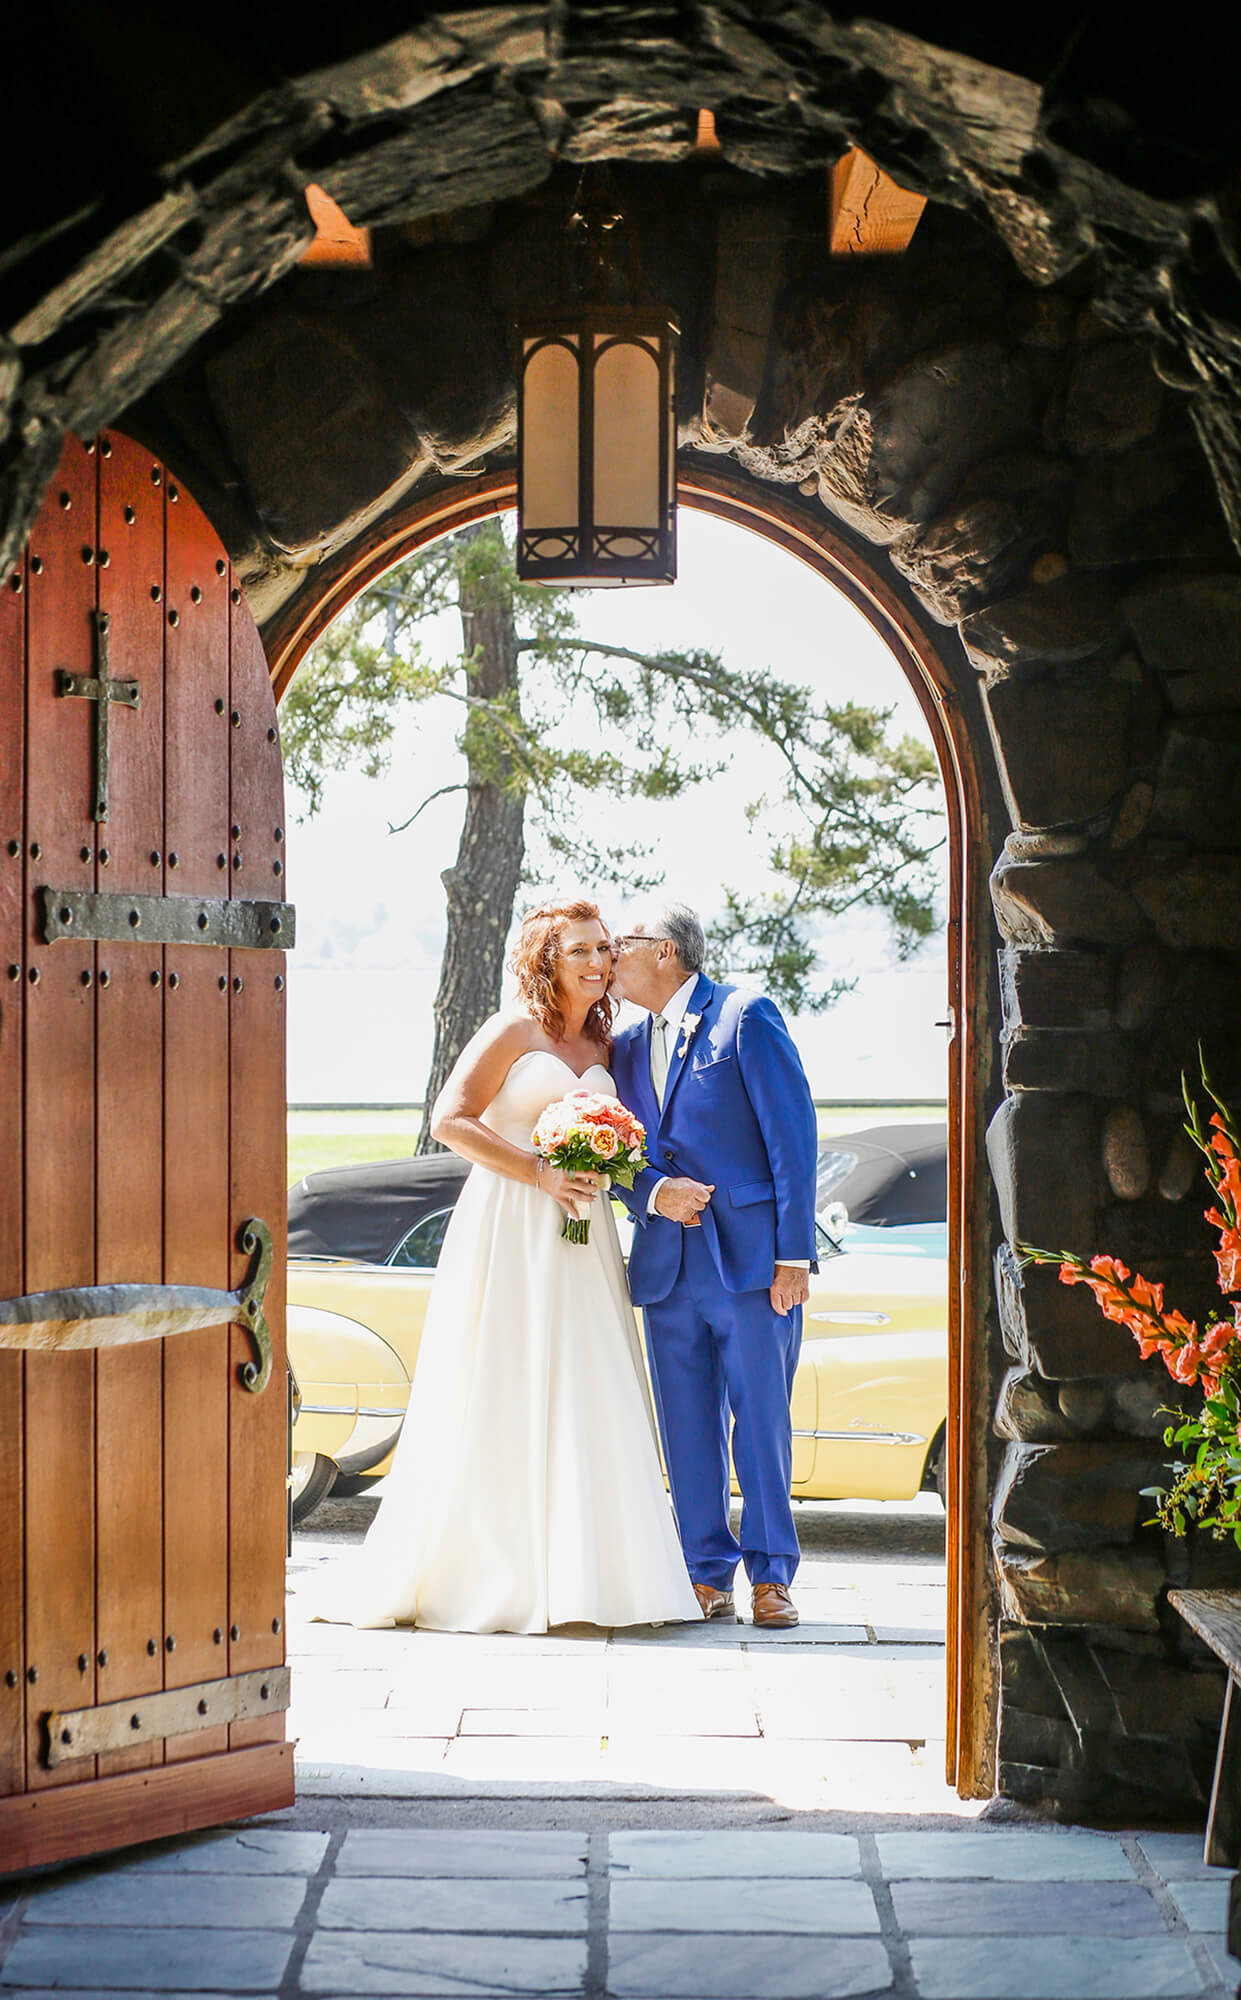 Wedding photography of the father of the bride seen through the doorway of a church kissing his daughter the bride